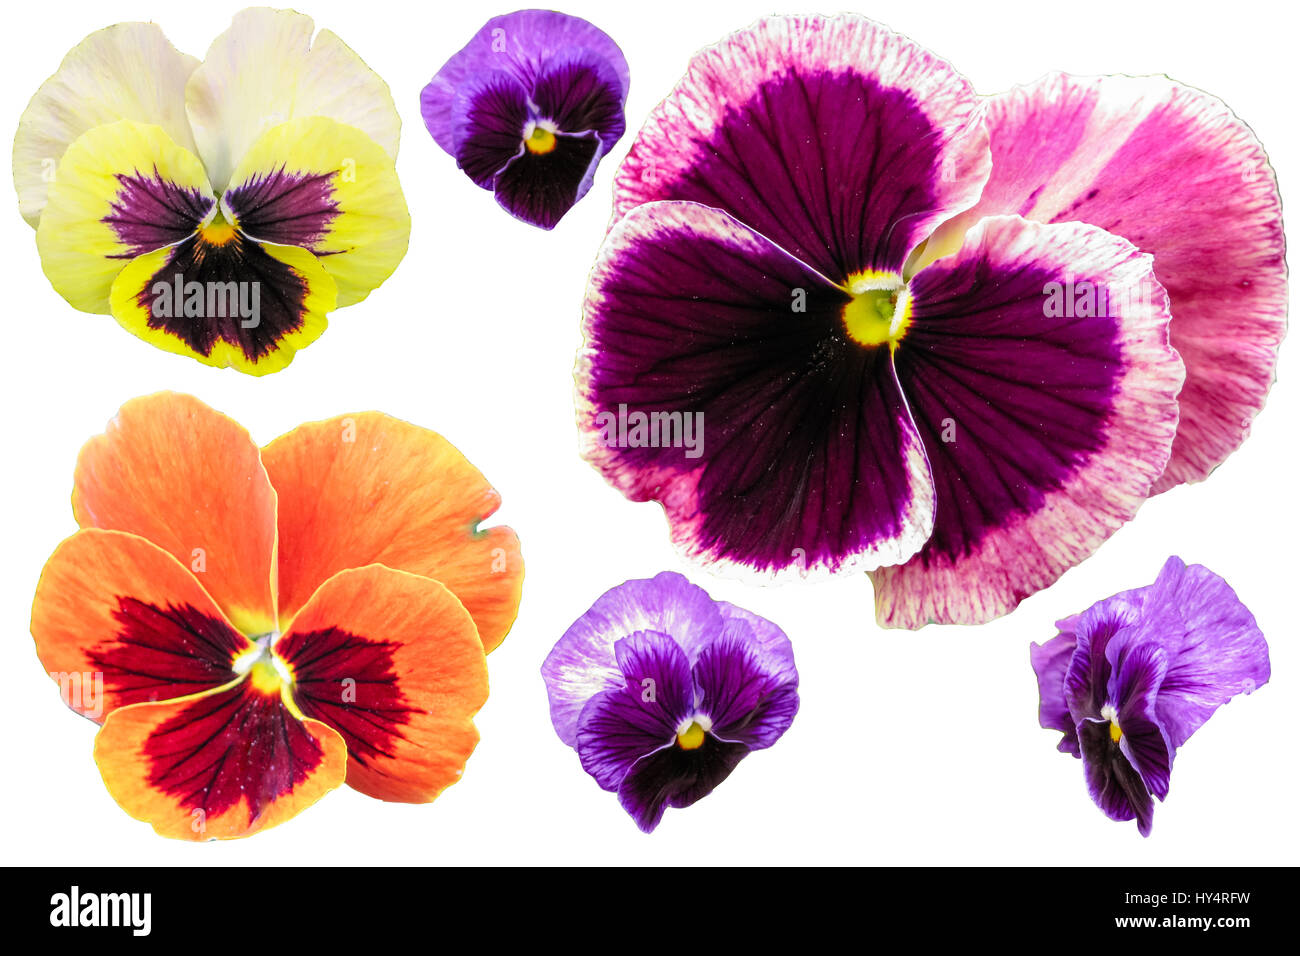 Pansy flowers isolated on white background. Viola tricolor red blue yellow macro closeup. Stock Photo